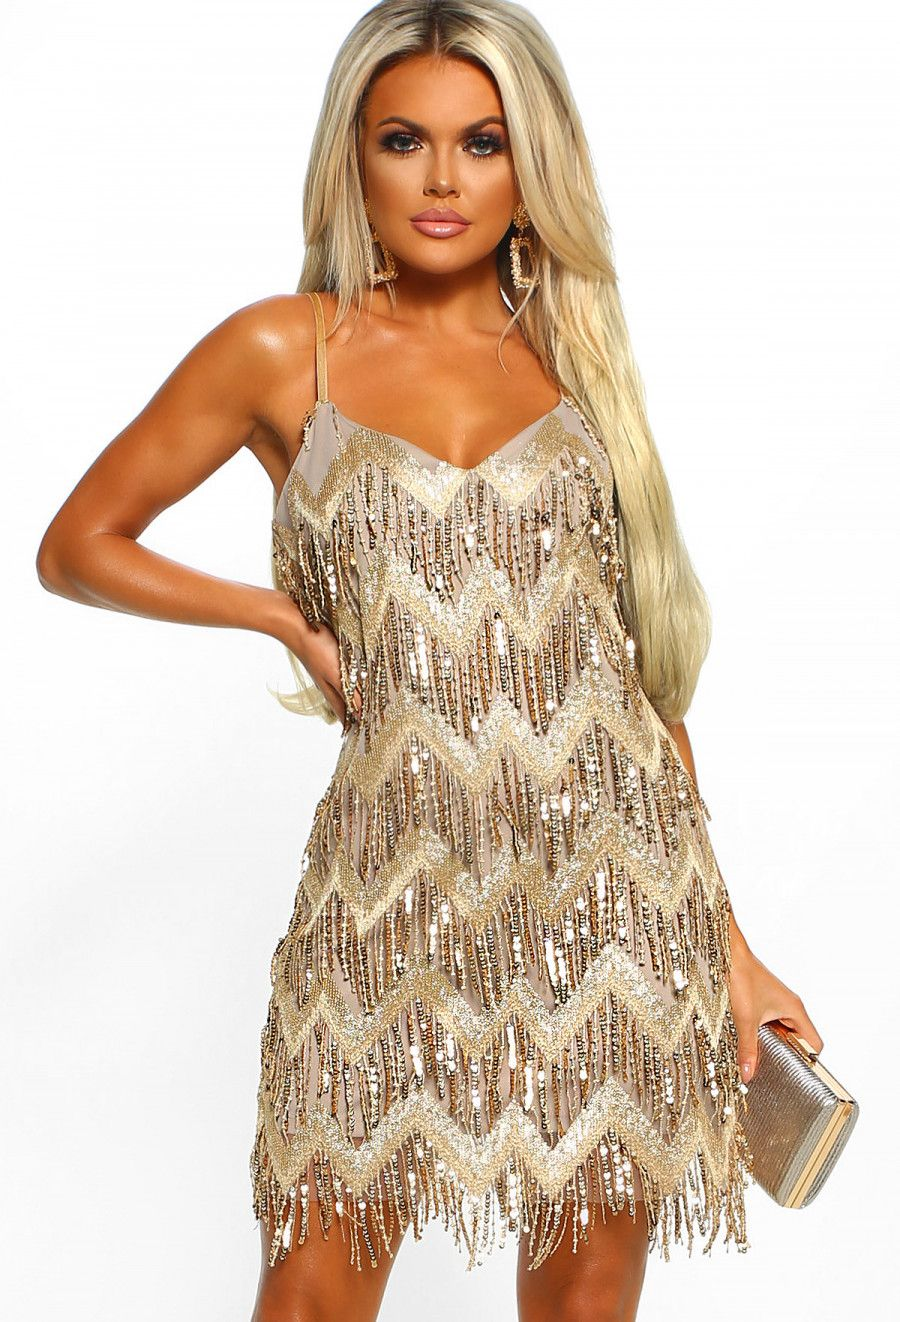 c40d01f62b995 Ultimate Glam Gold Sequin Fringe Mini Dress - 8   Outfits   Pink ...